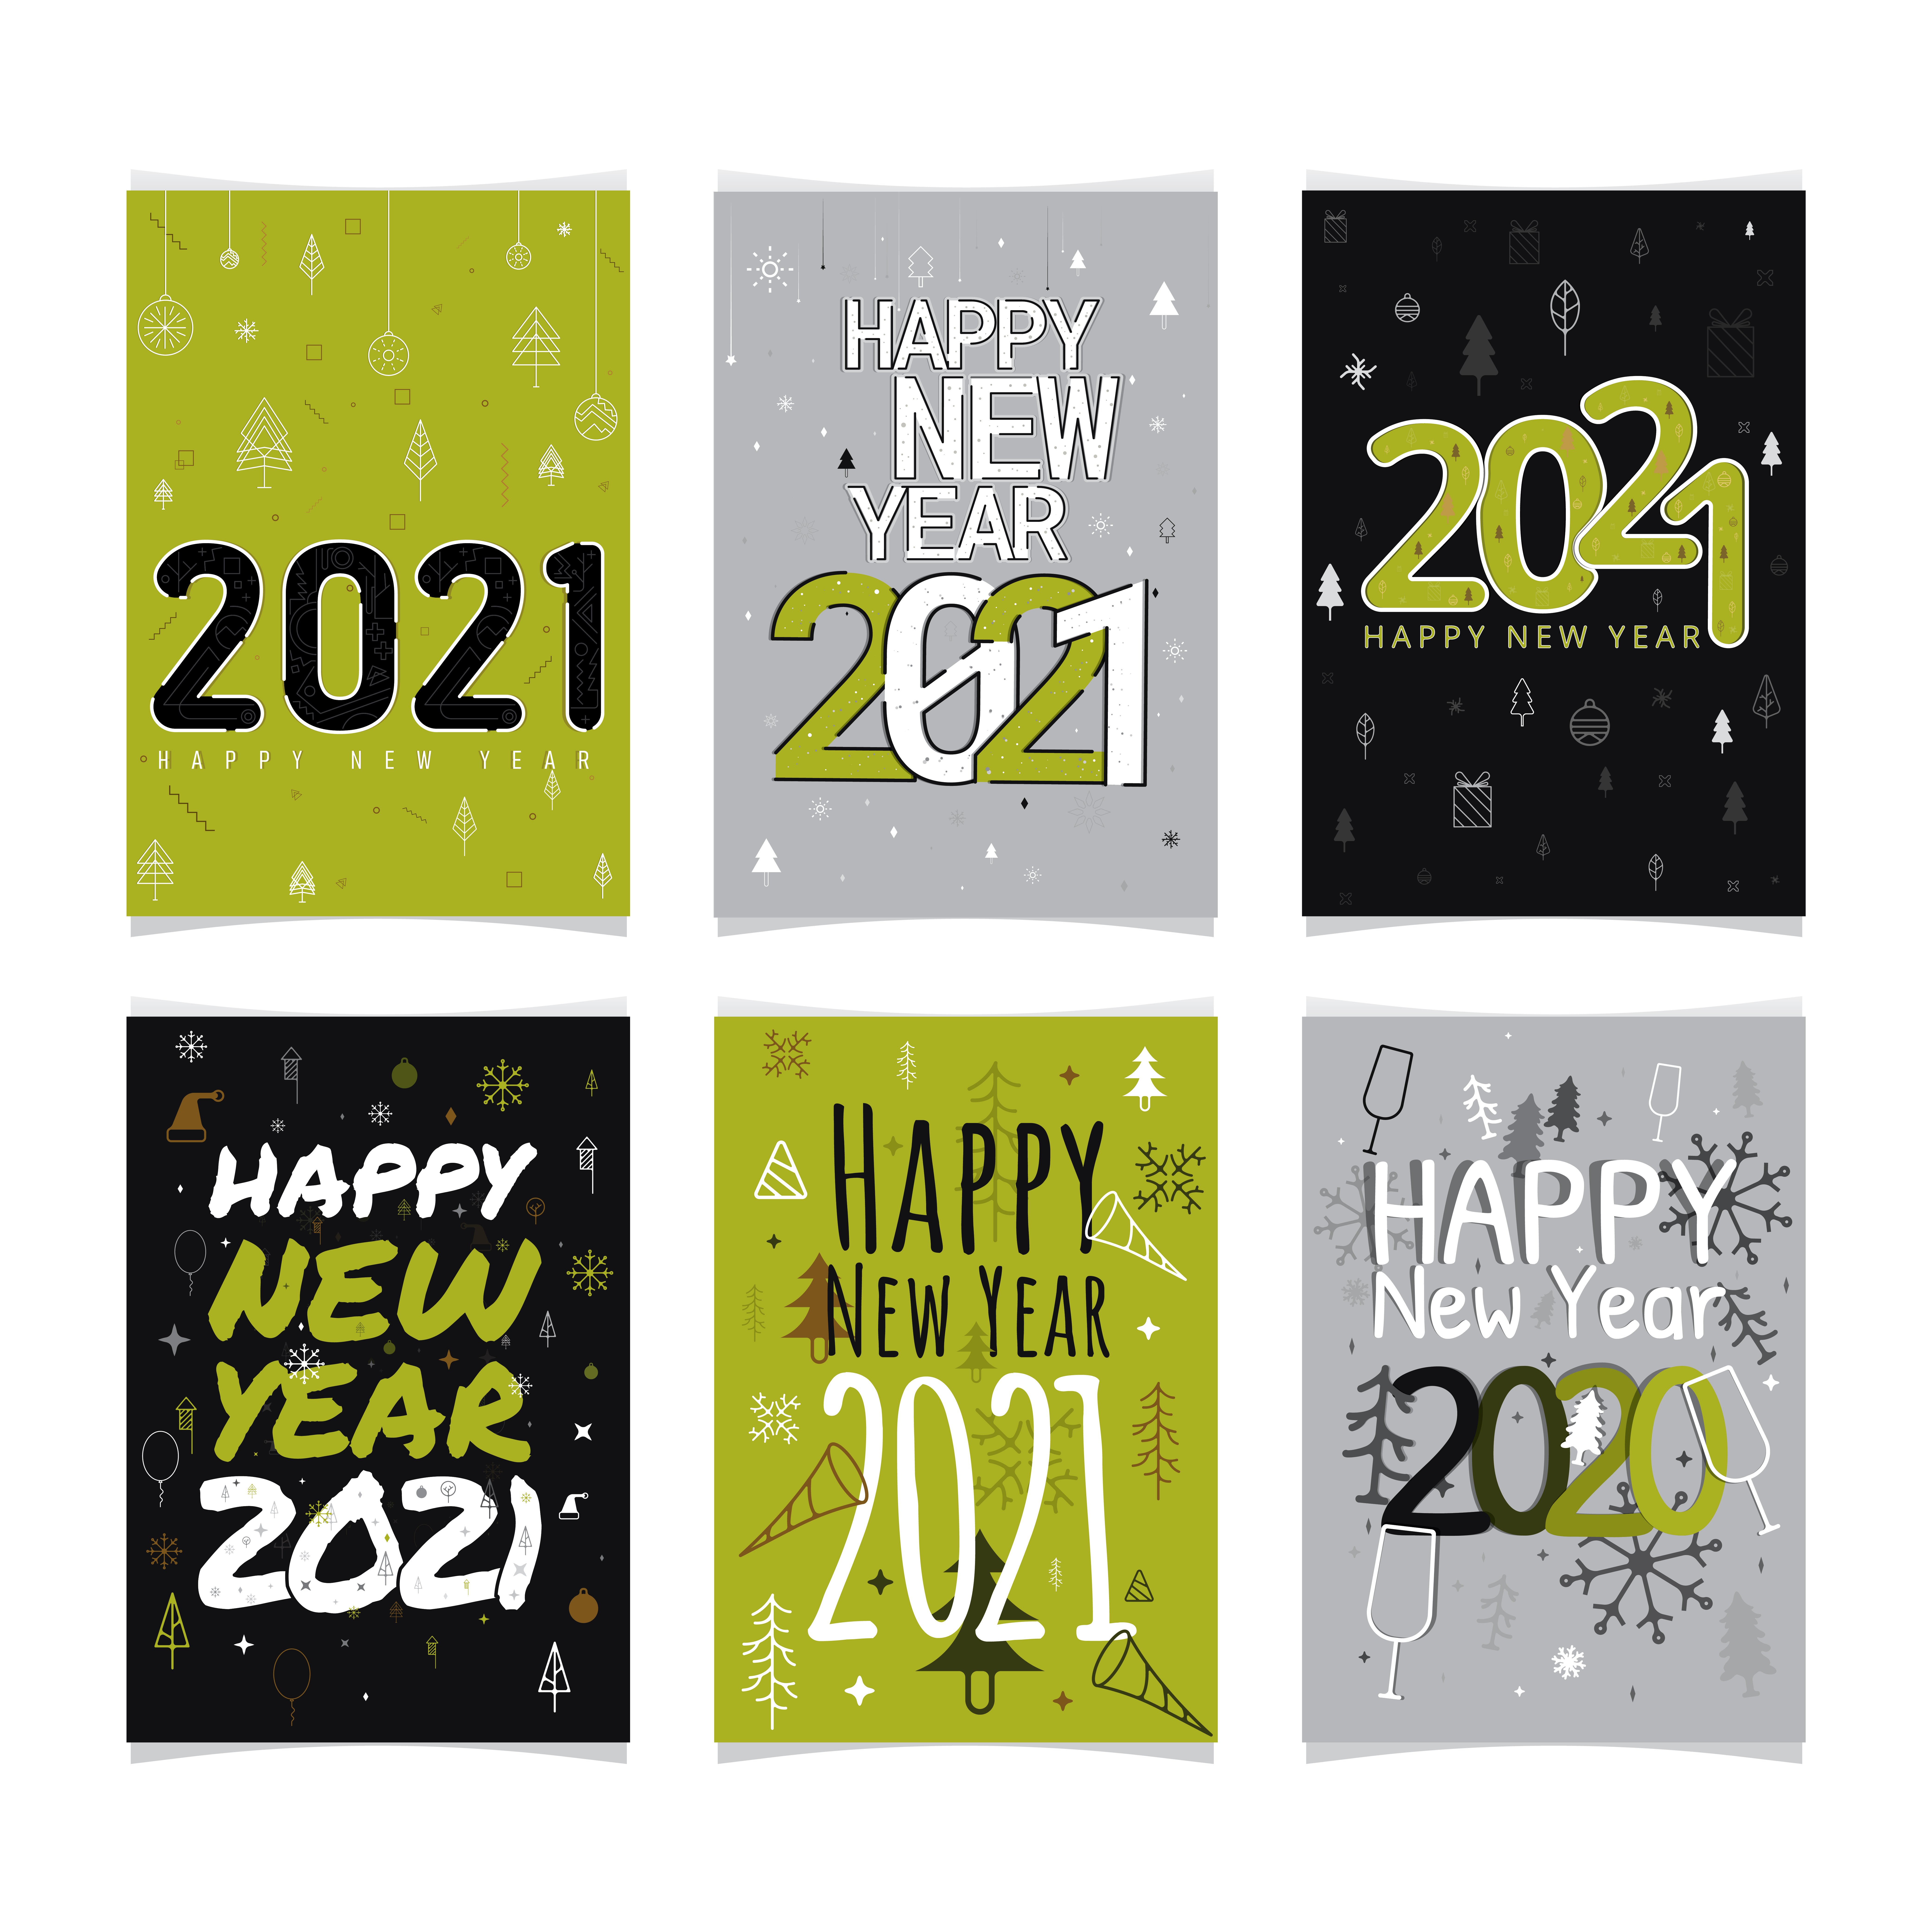 Commemorate Of Happy New Year 2021 Cards Sets Download Free Vectors Clipart Graphics Vector Art